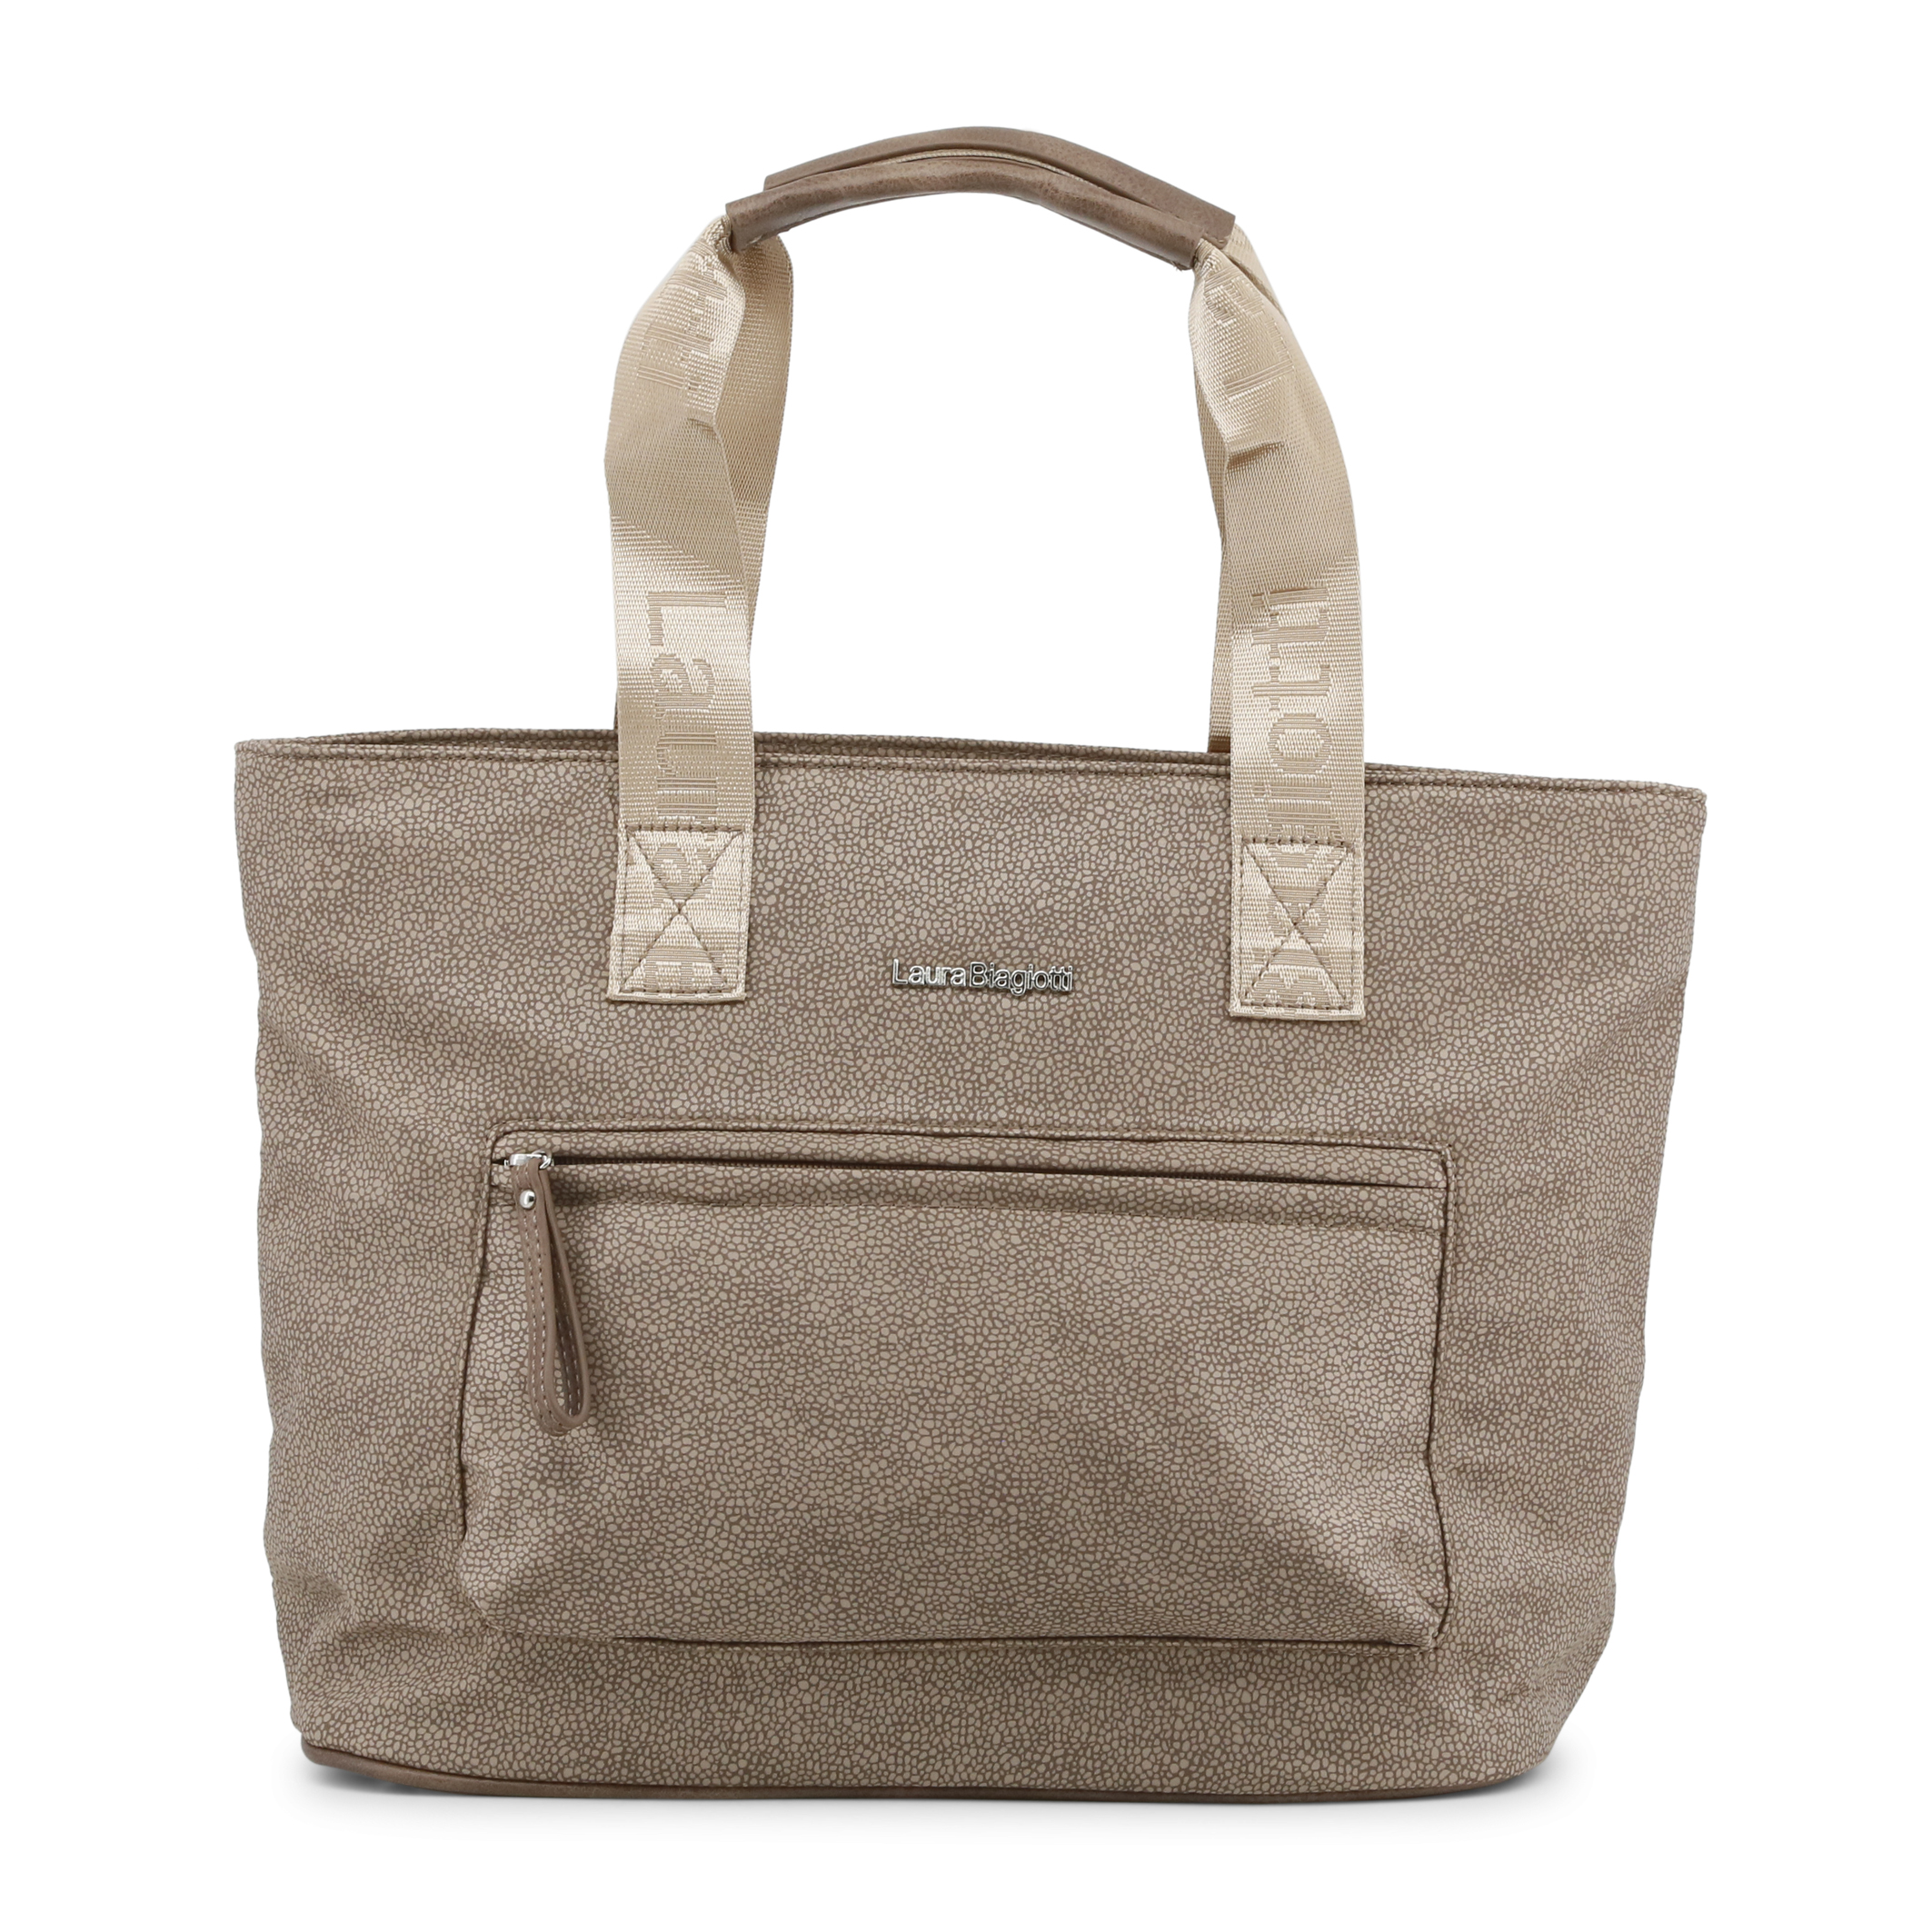 Shopping bag Laura Biagiotti LB18S103-4 Donna Marrone 86144